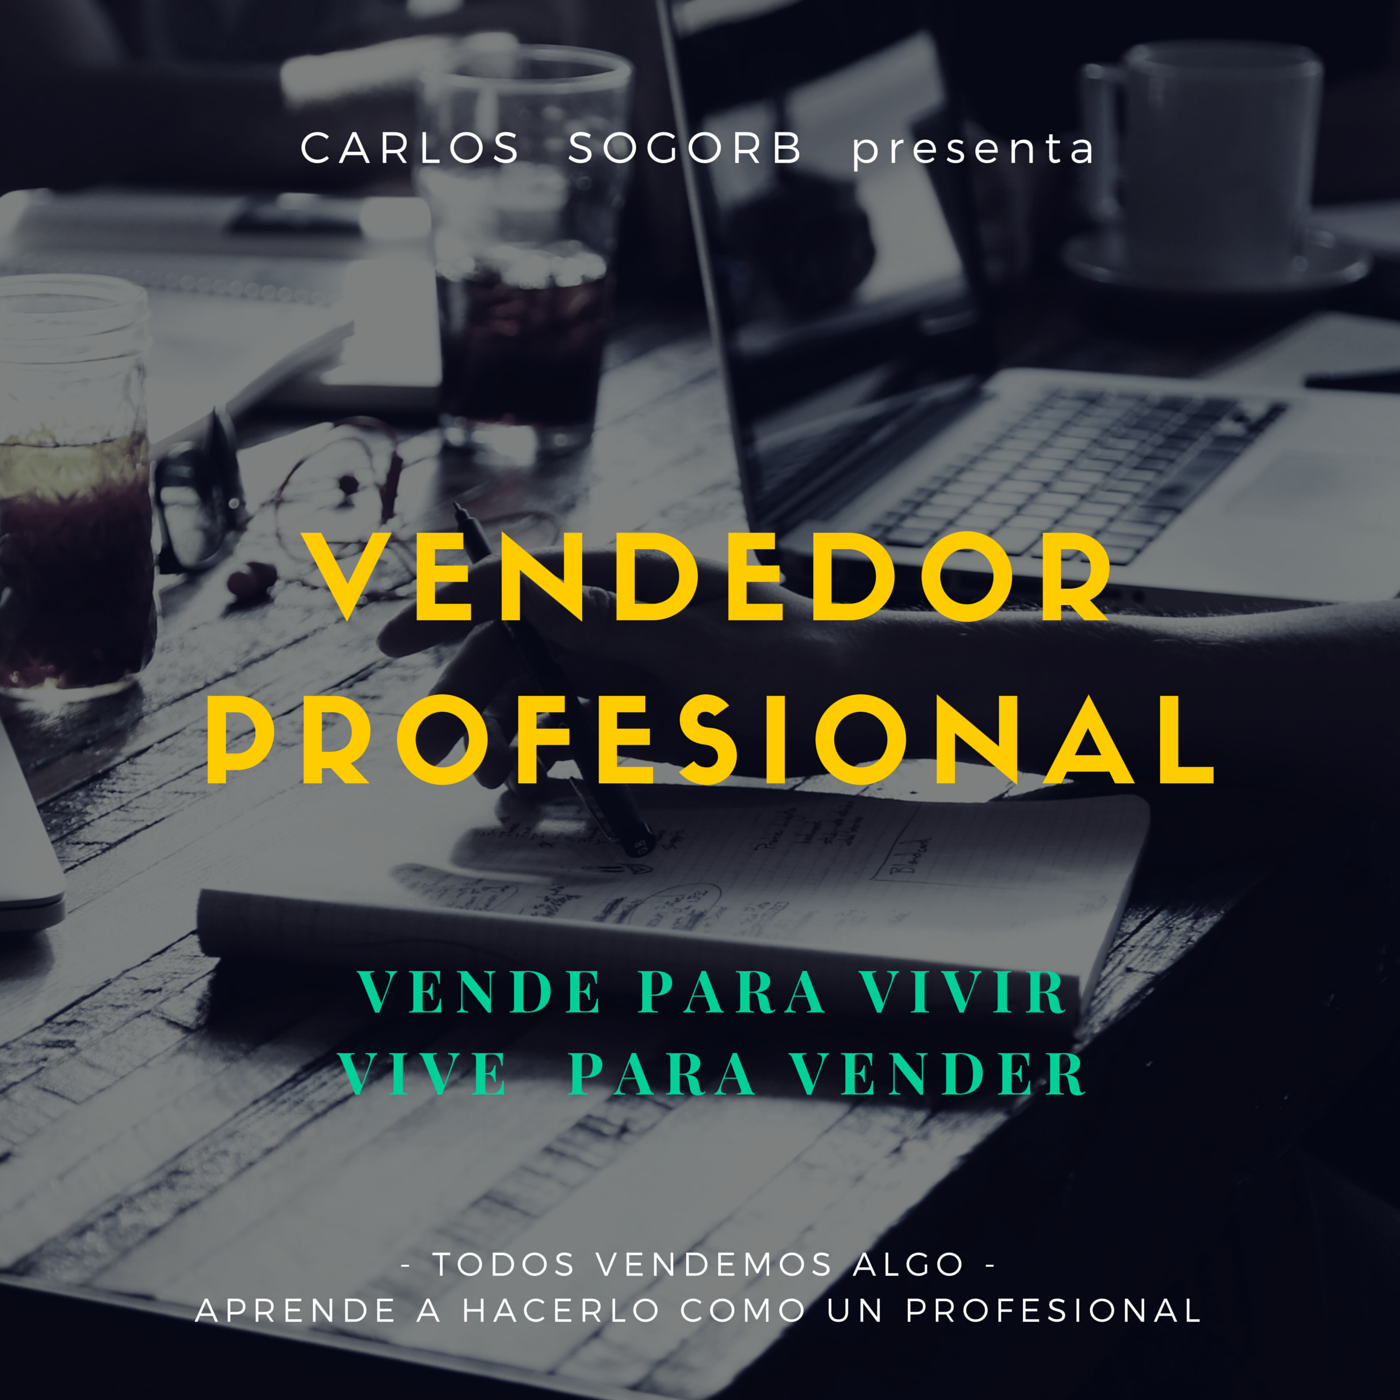 VENDEDOR PROFESIONAL